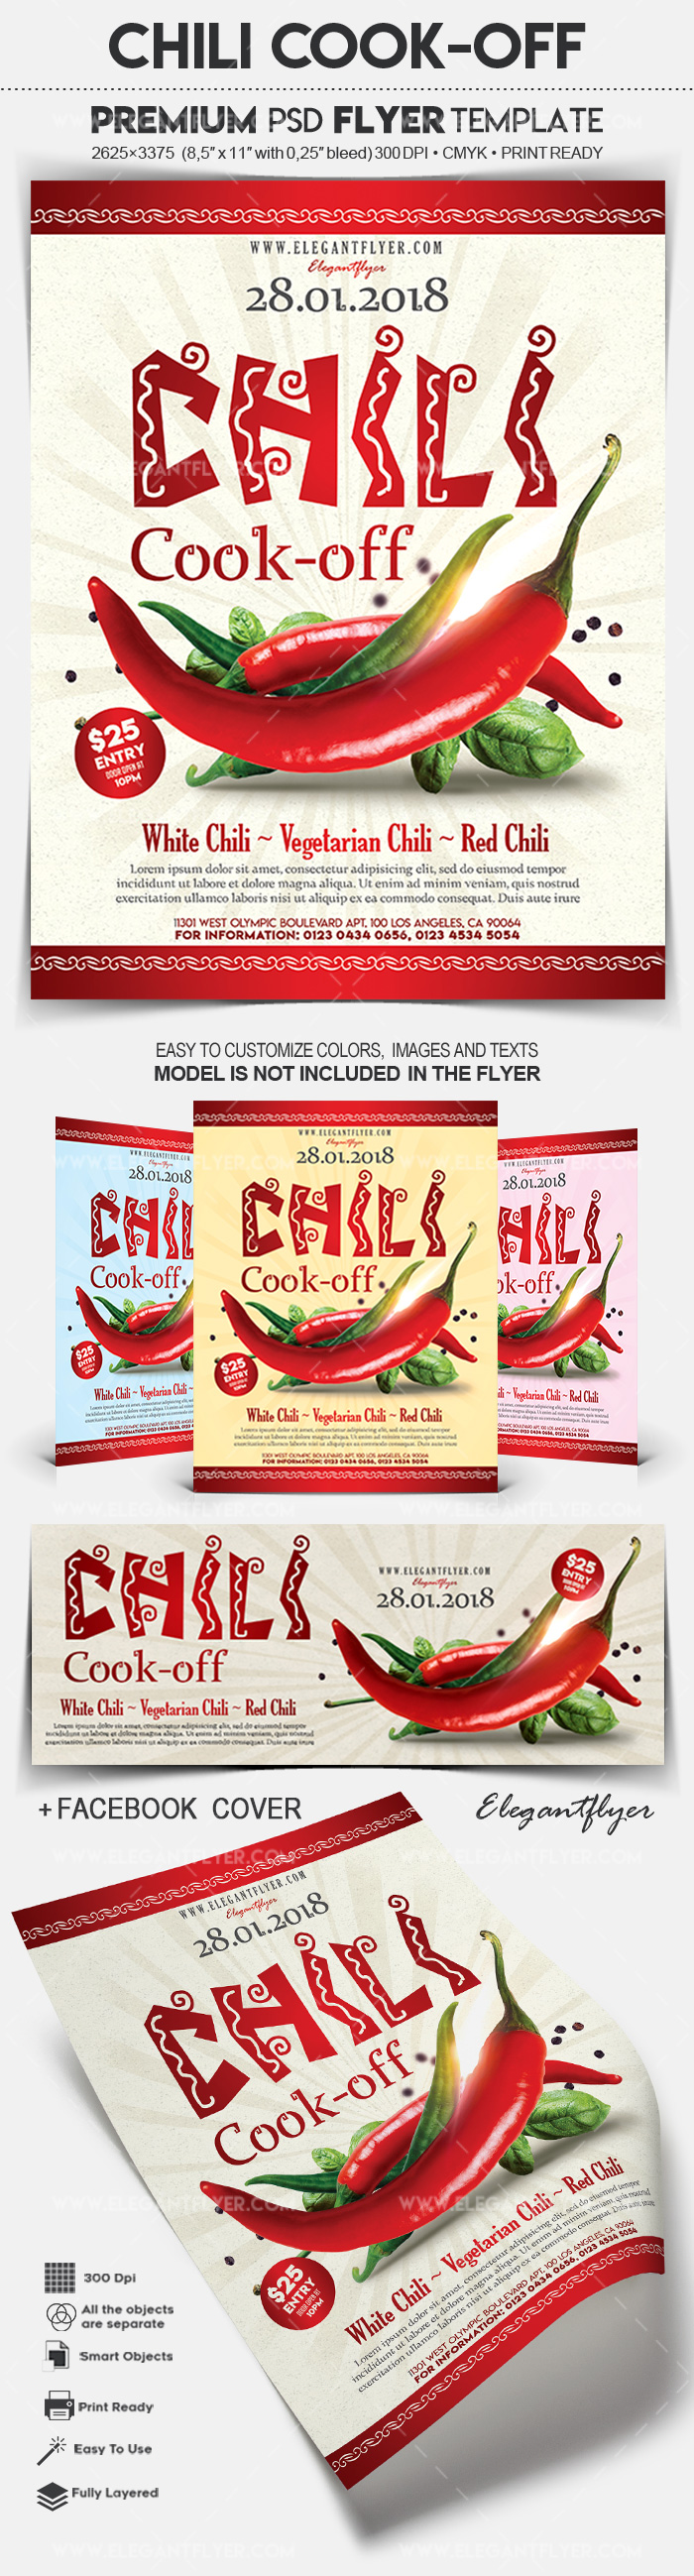 Chili Cook-off – Flyer PSD Template + Facebook Cover